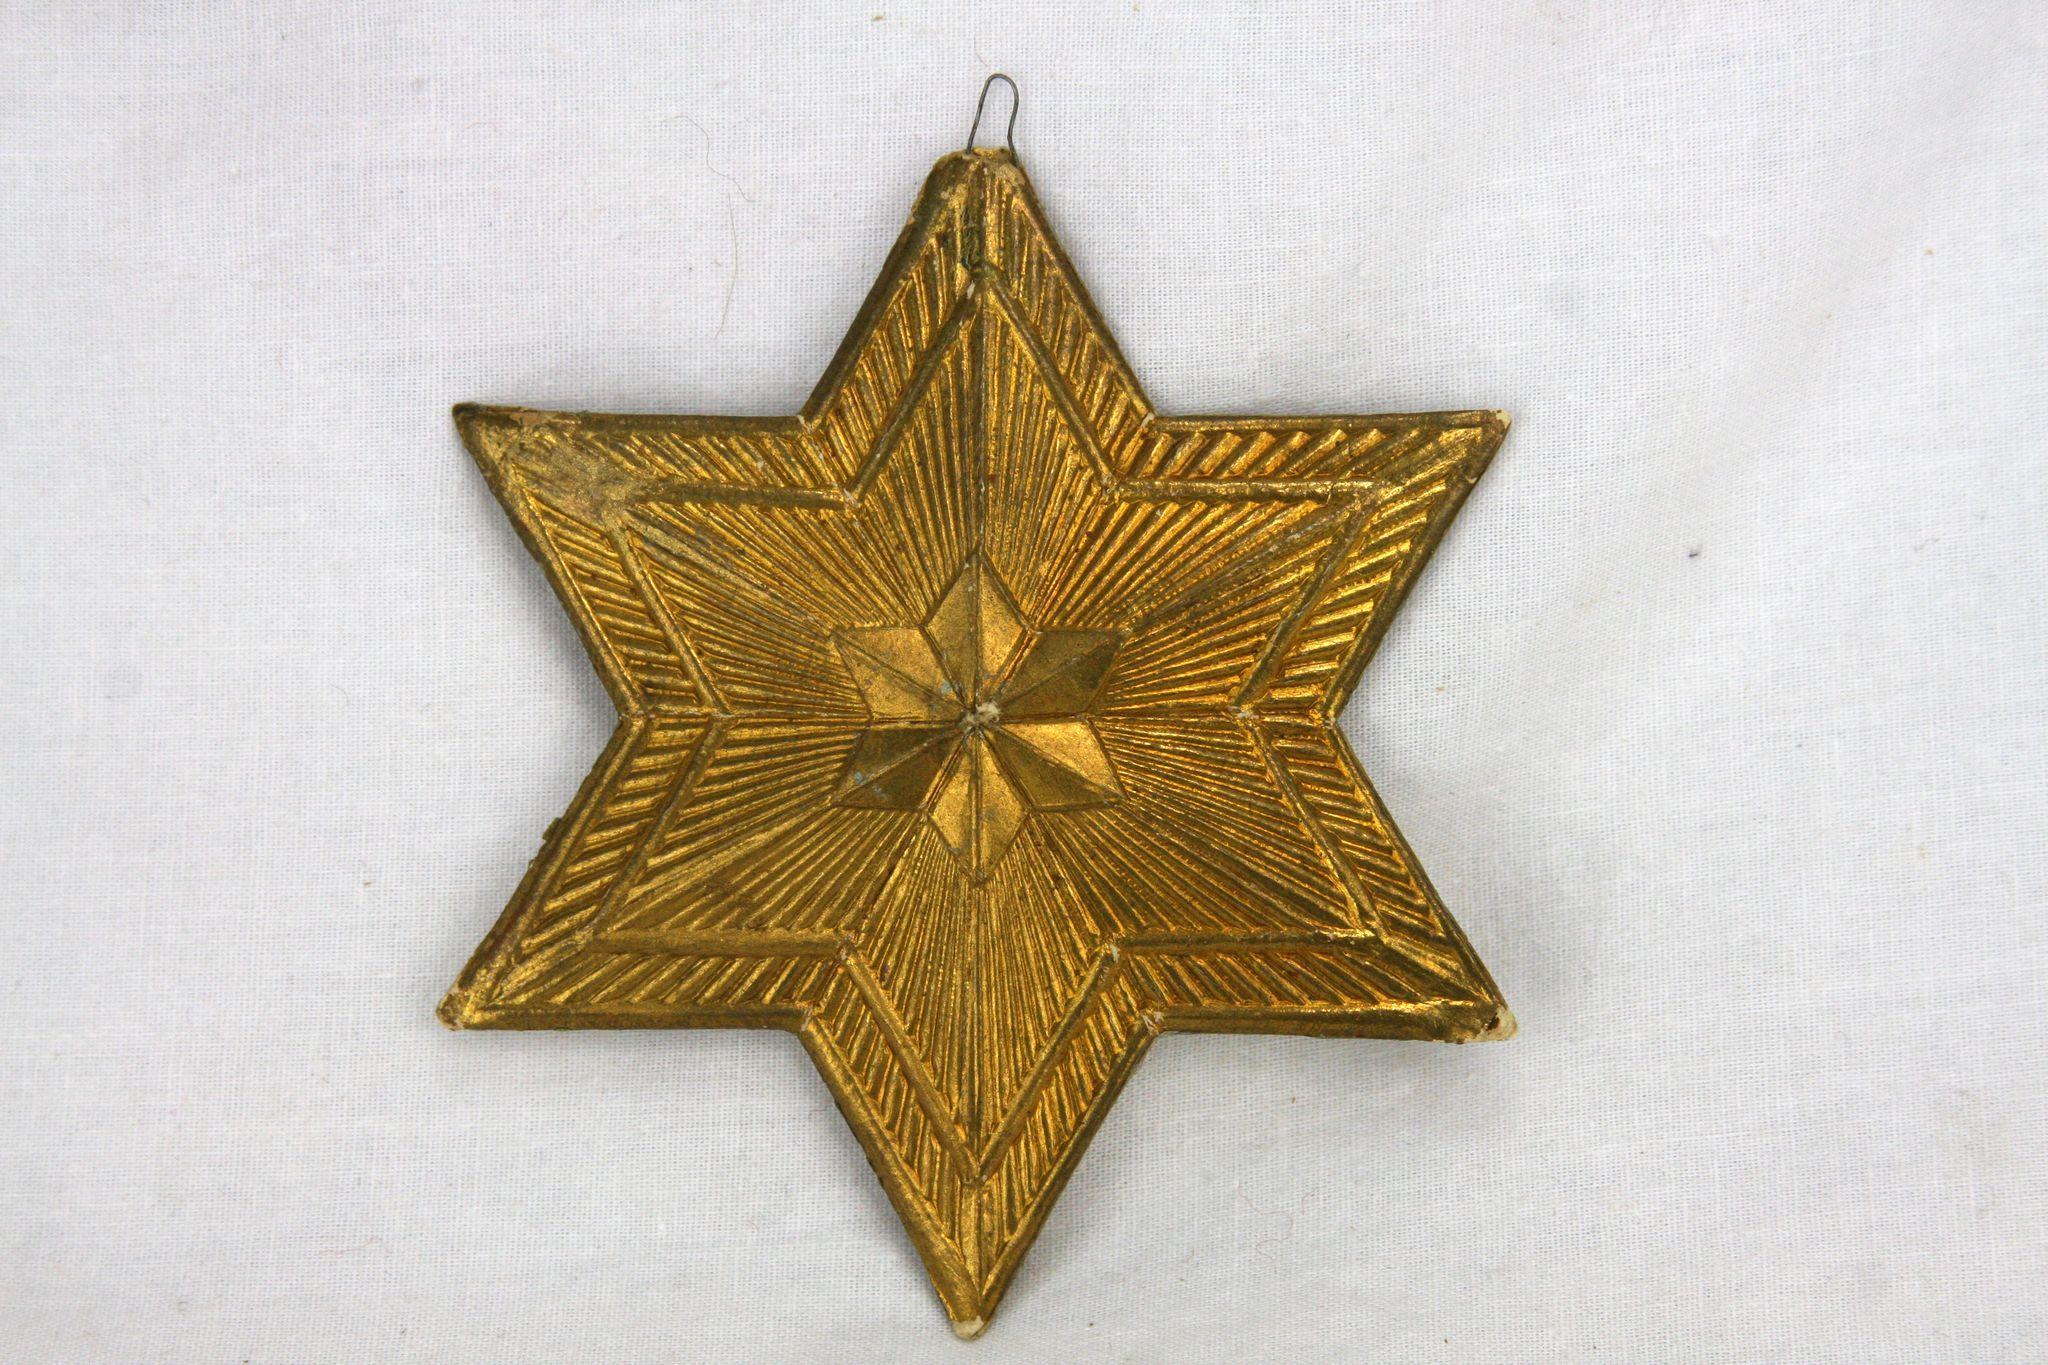 Gold star ornaments - Roll Over Large Image To Magnify Click Large Image To Zoom